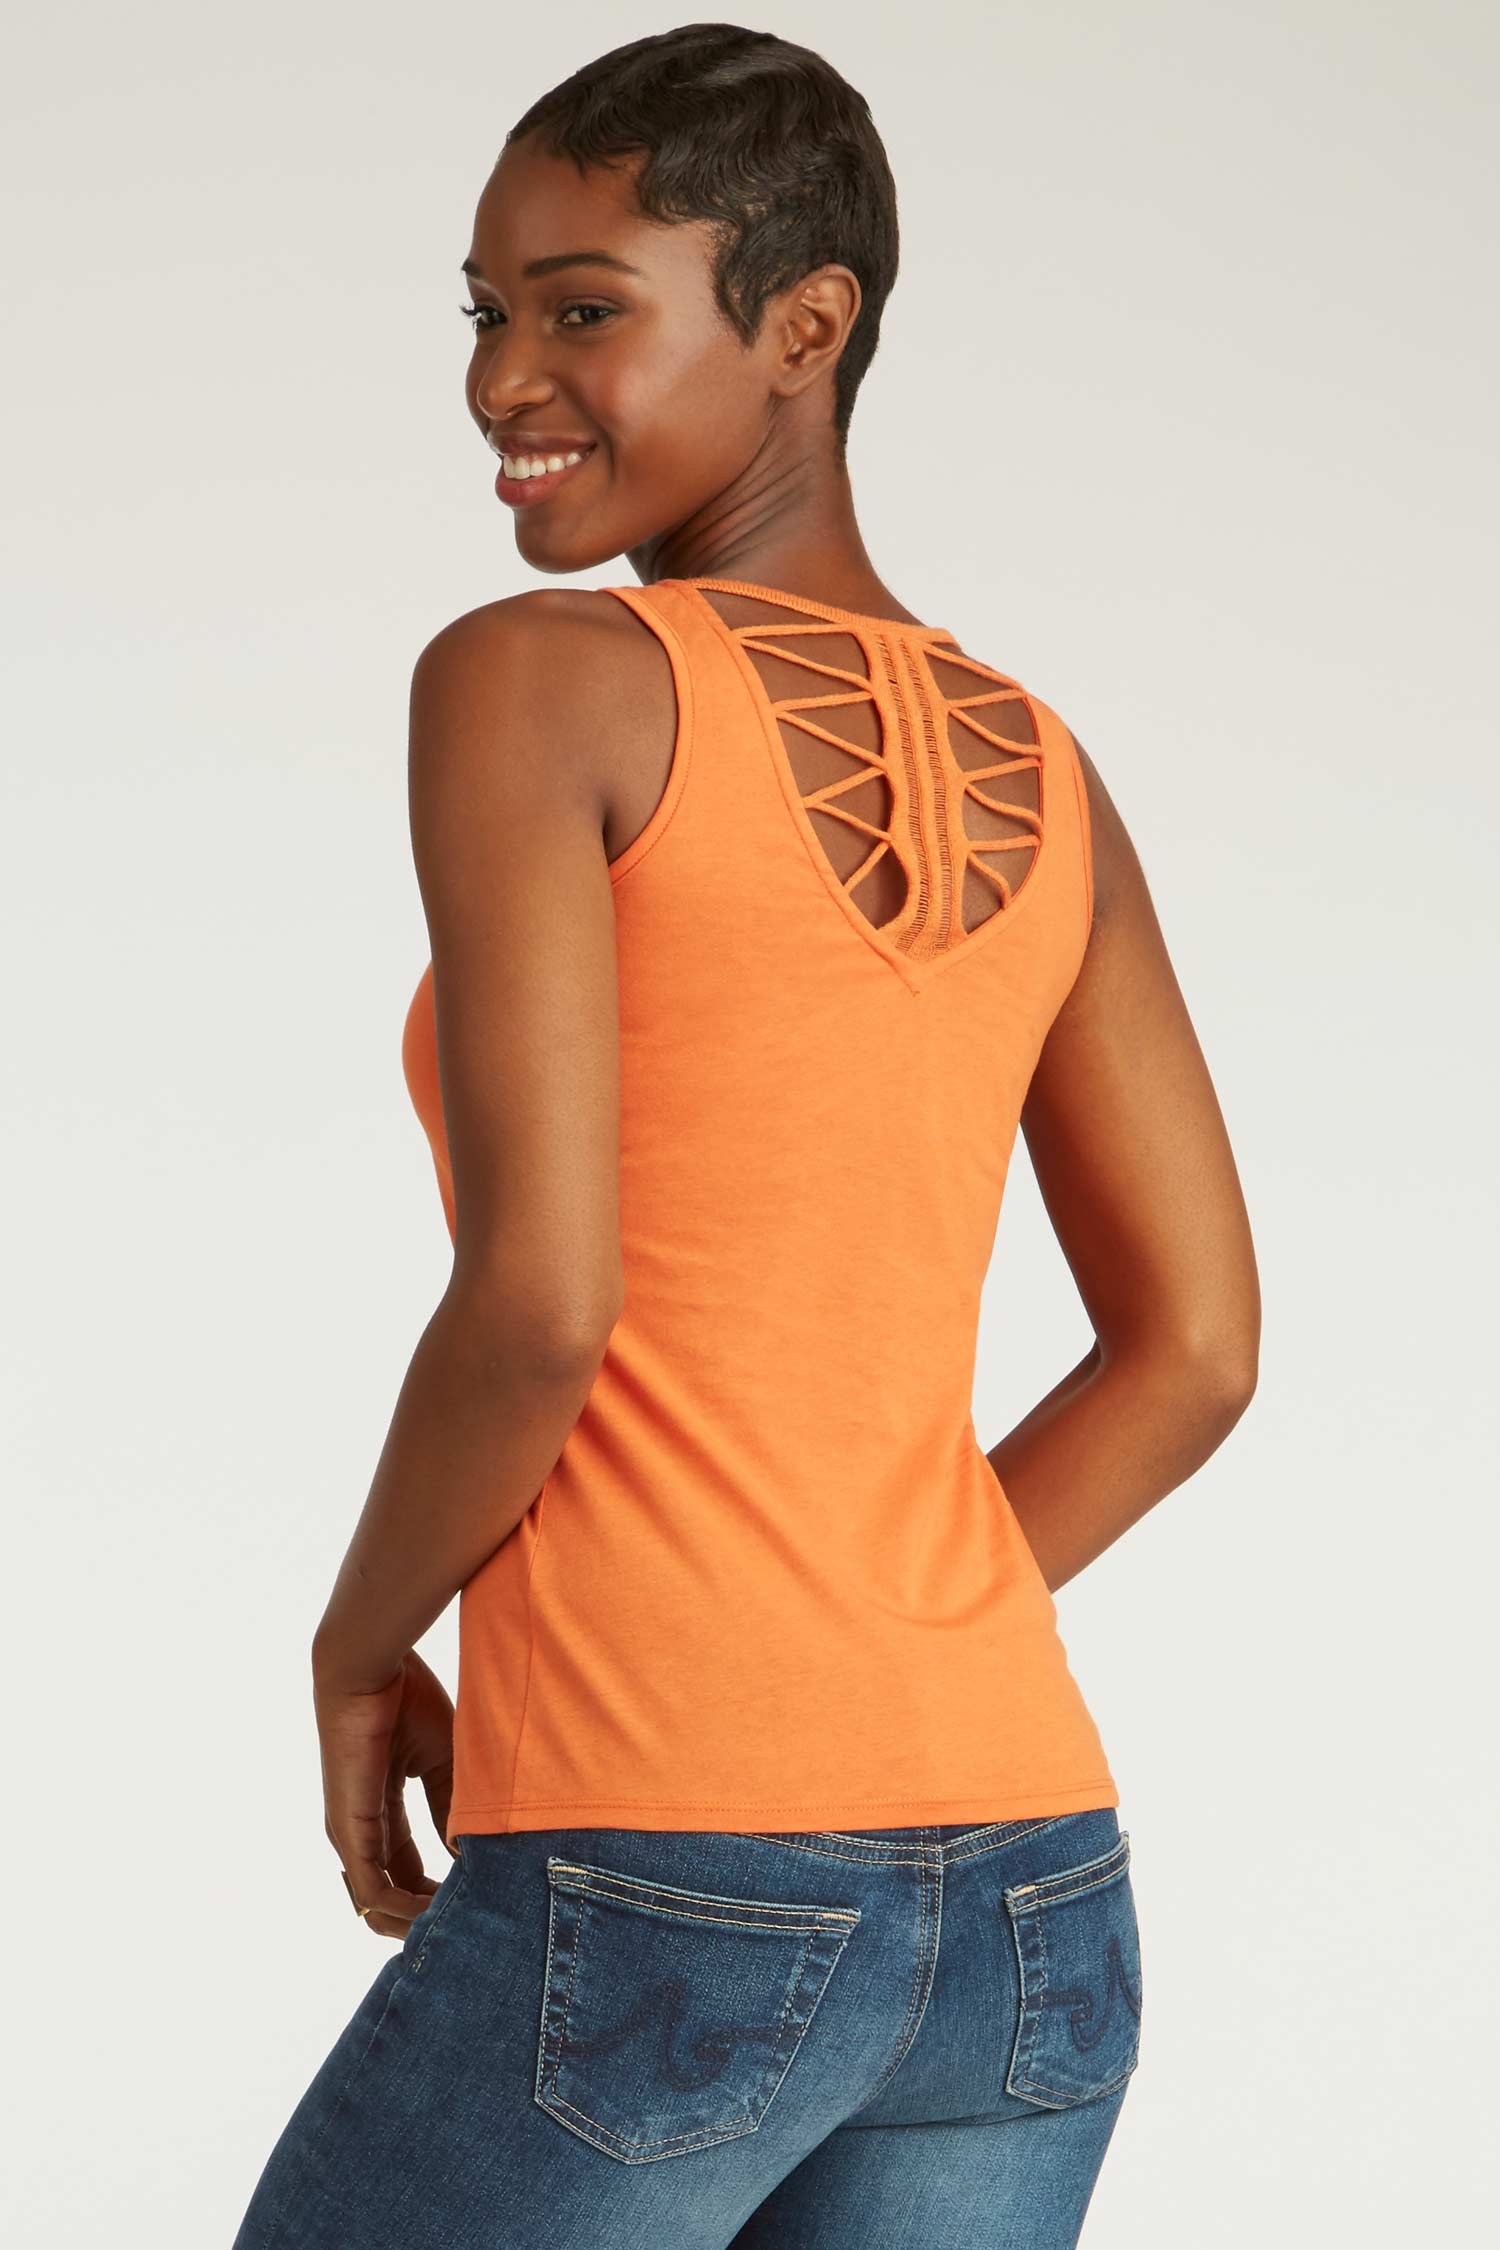 Womens Organic Cotton Top | Crochet Back Tank | Orange